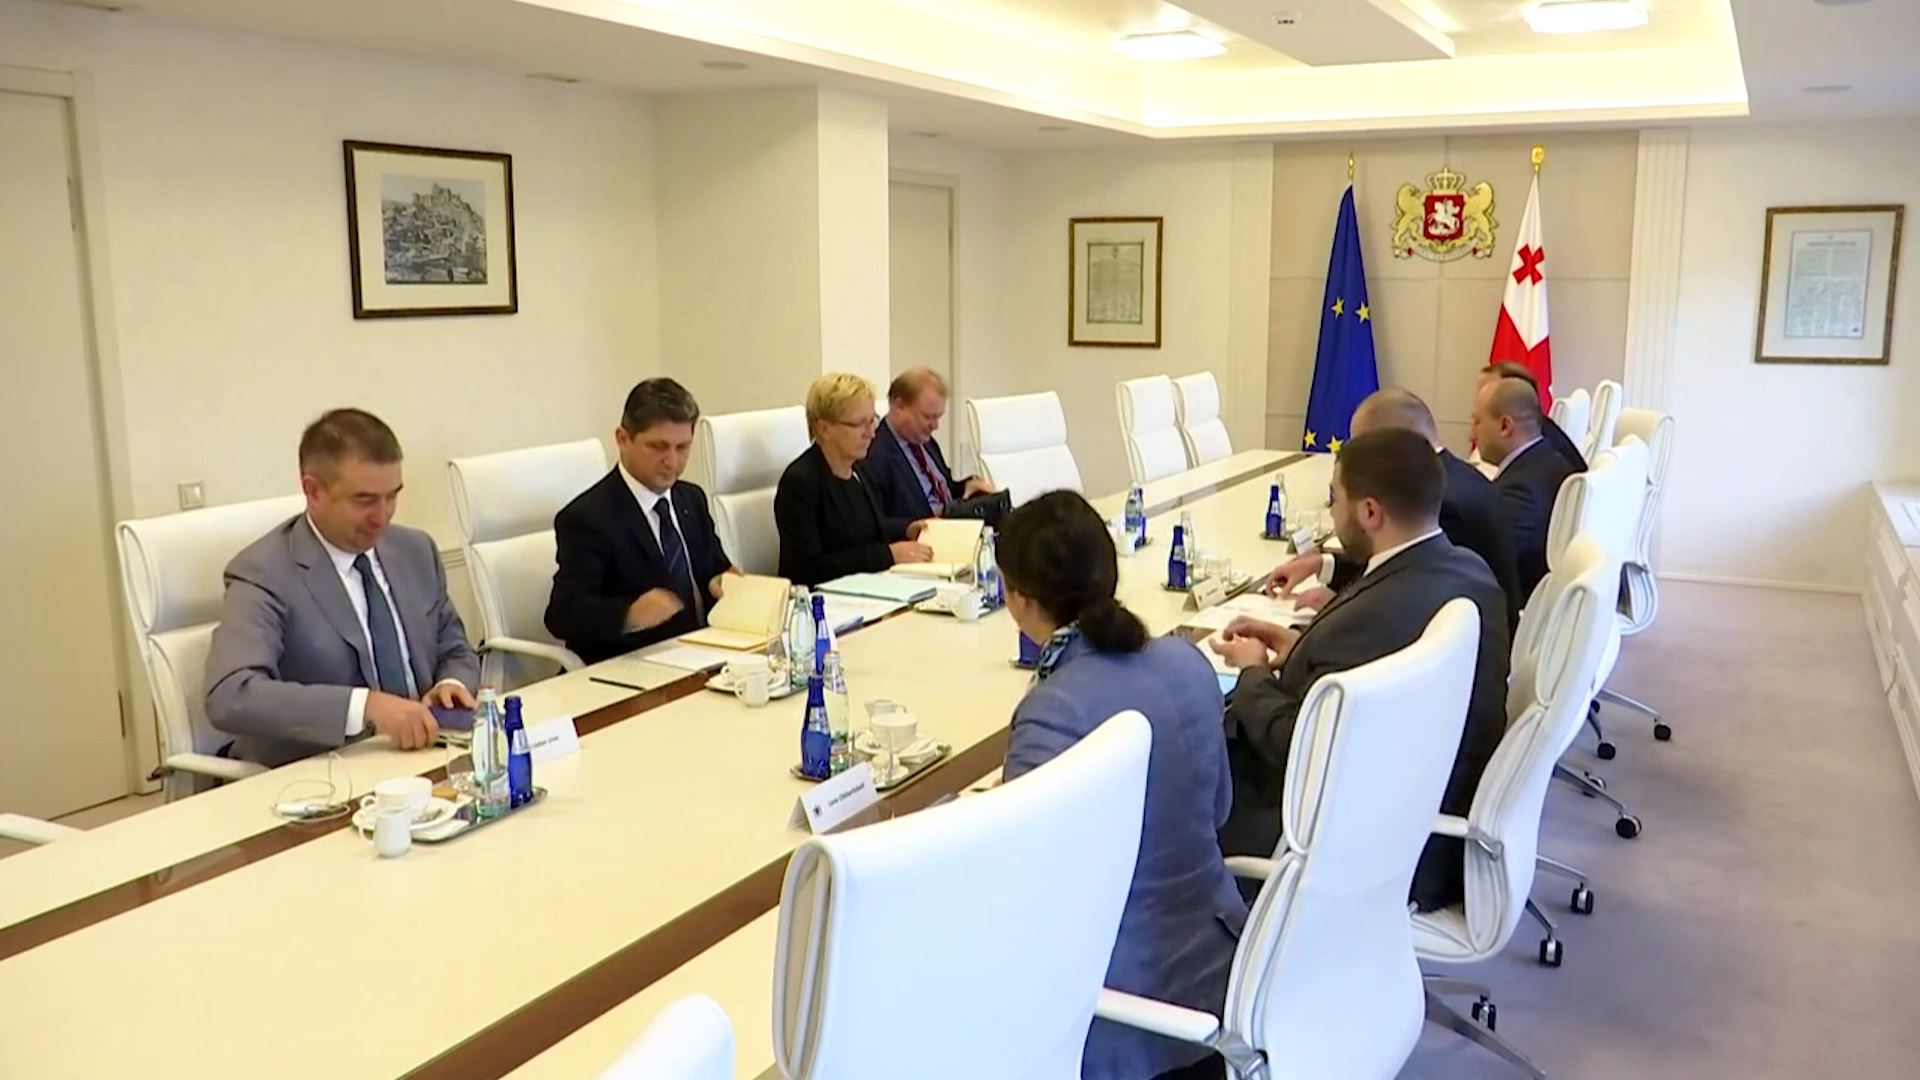 Visit of members of the Monitoring Committee of the Council of Europe Parliamentary Assembly